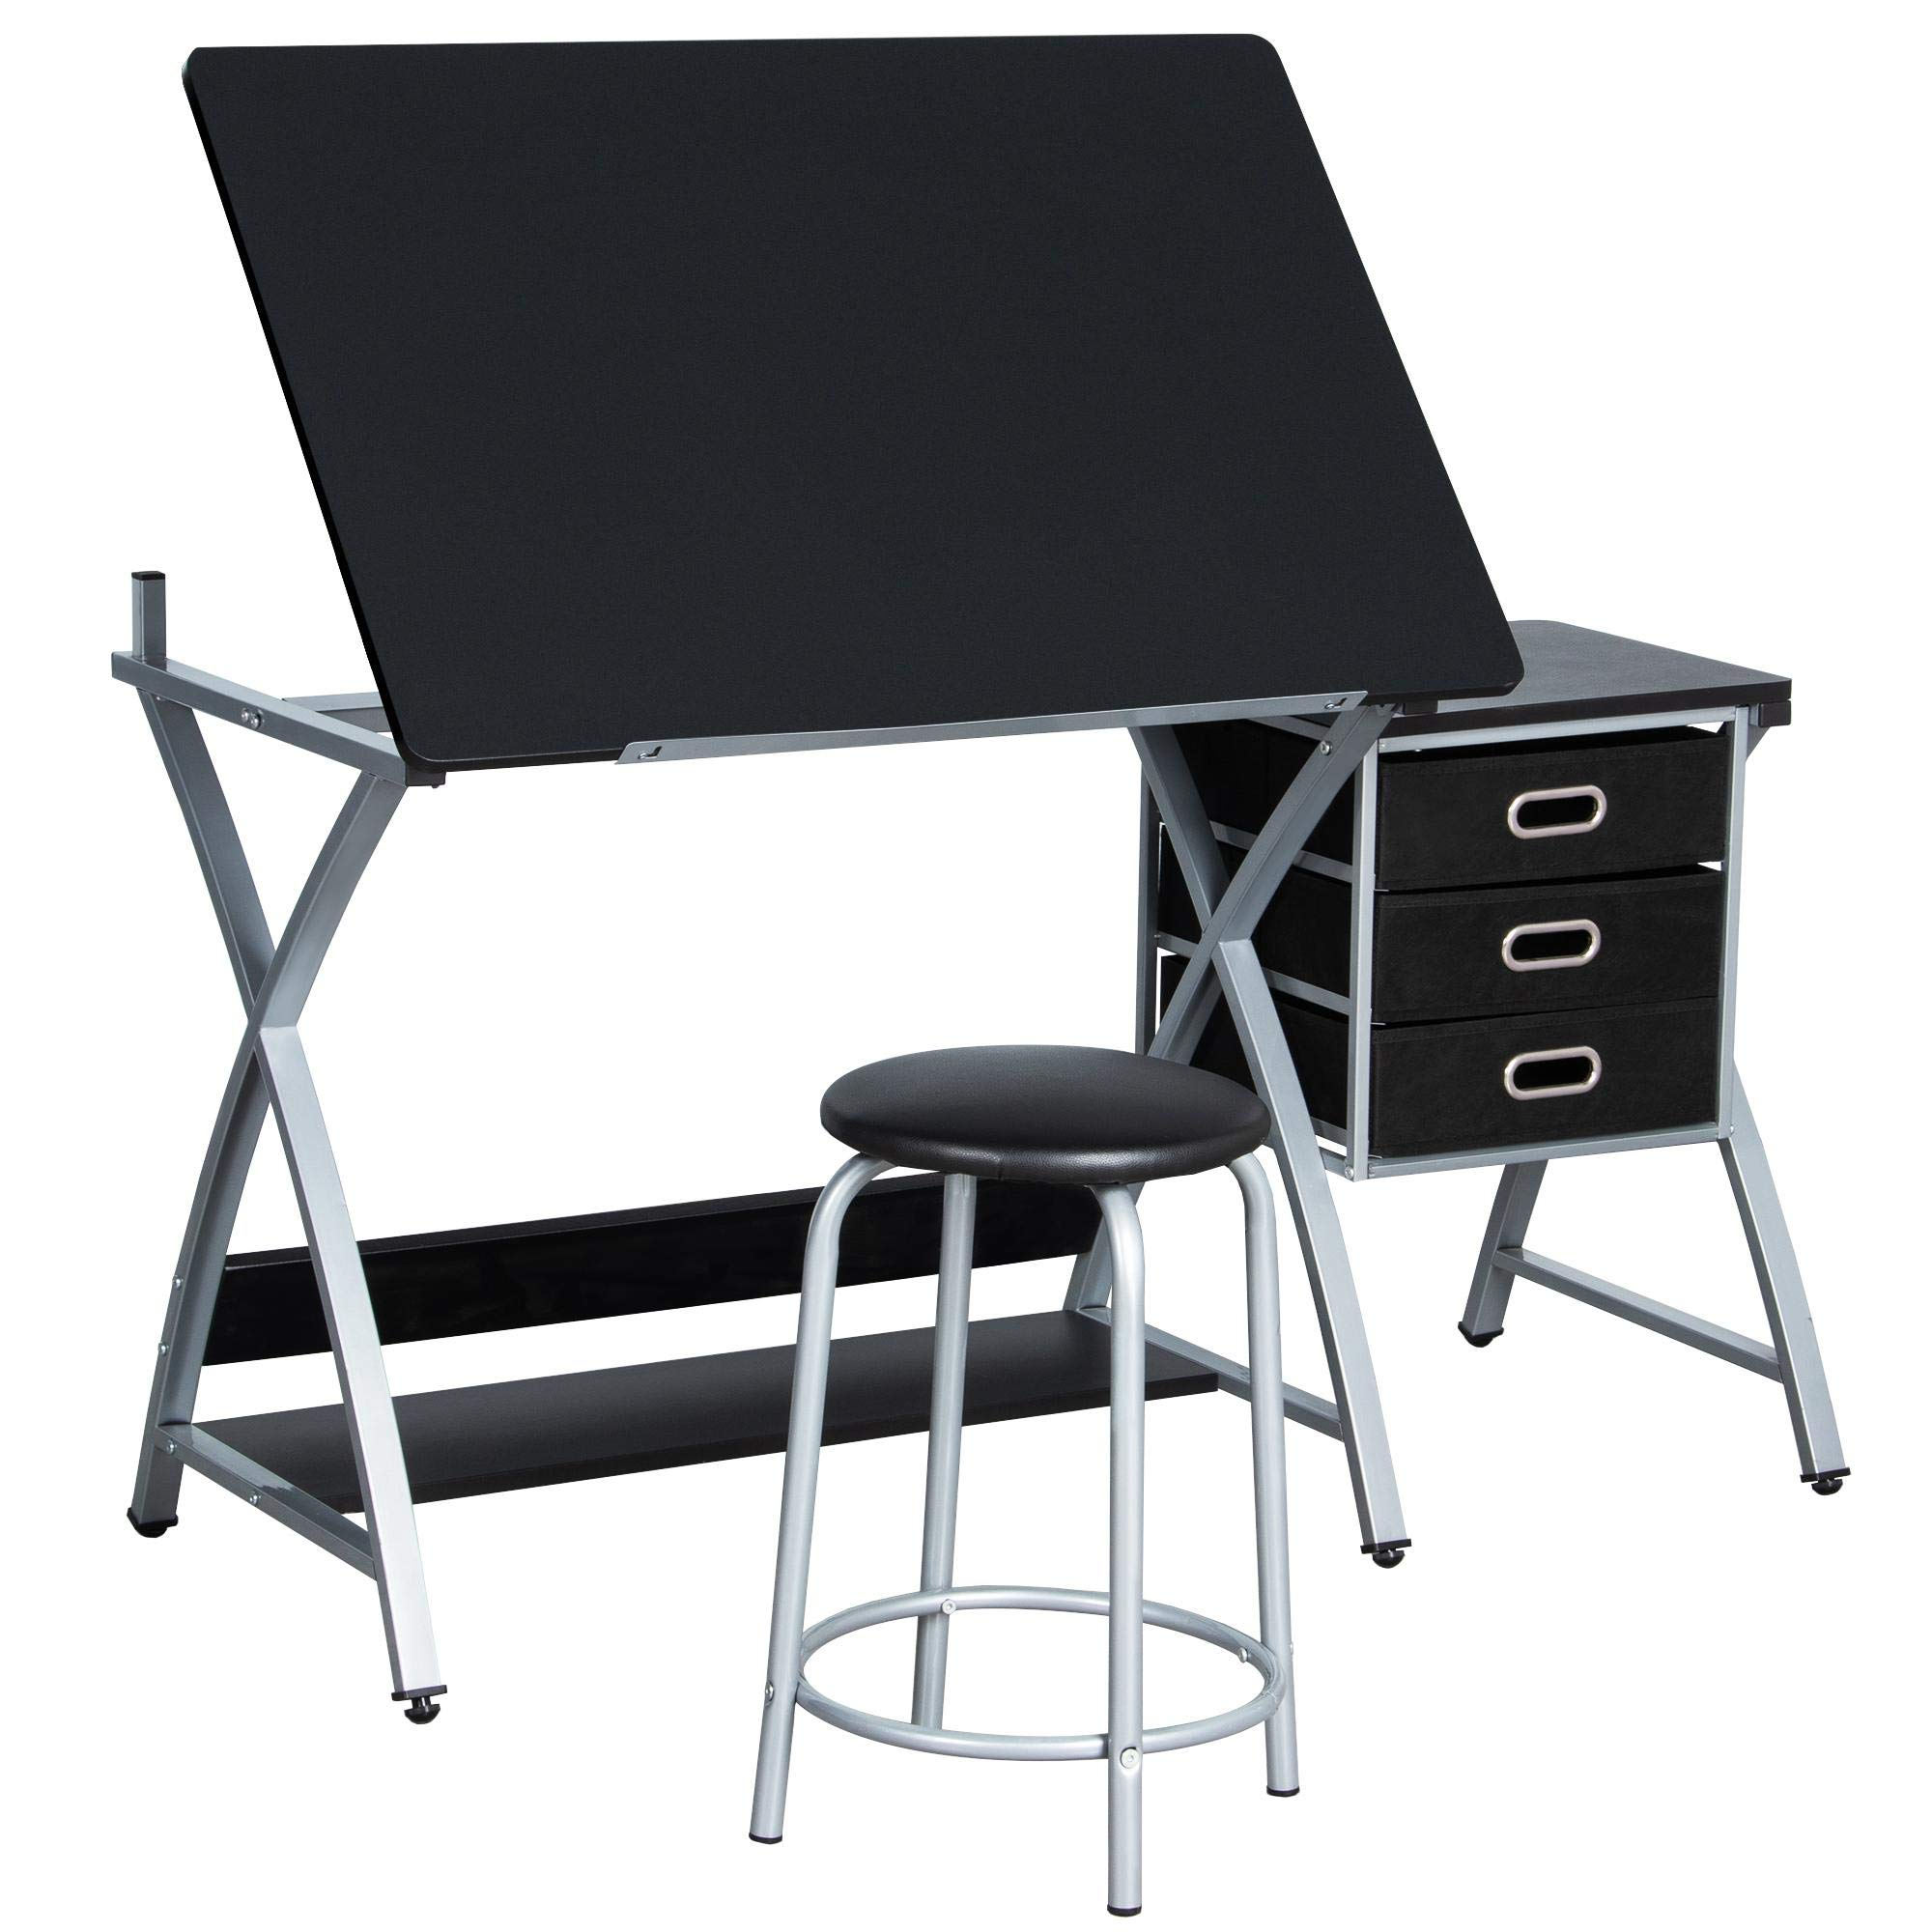 YAHEETECH Adjustable Drafting Table Drawing/Draft Art Desk for Adults Craft Supplies w/Stool and Storage Drawers Art Studio Design Craft Station